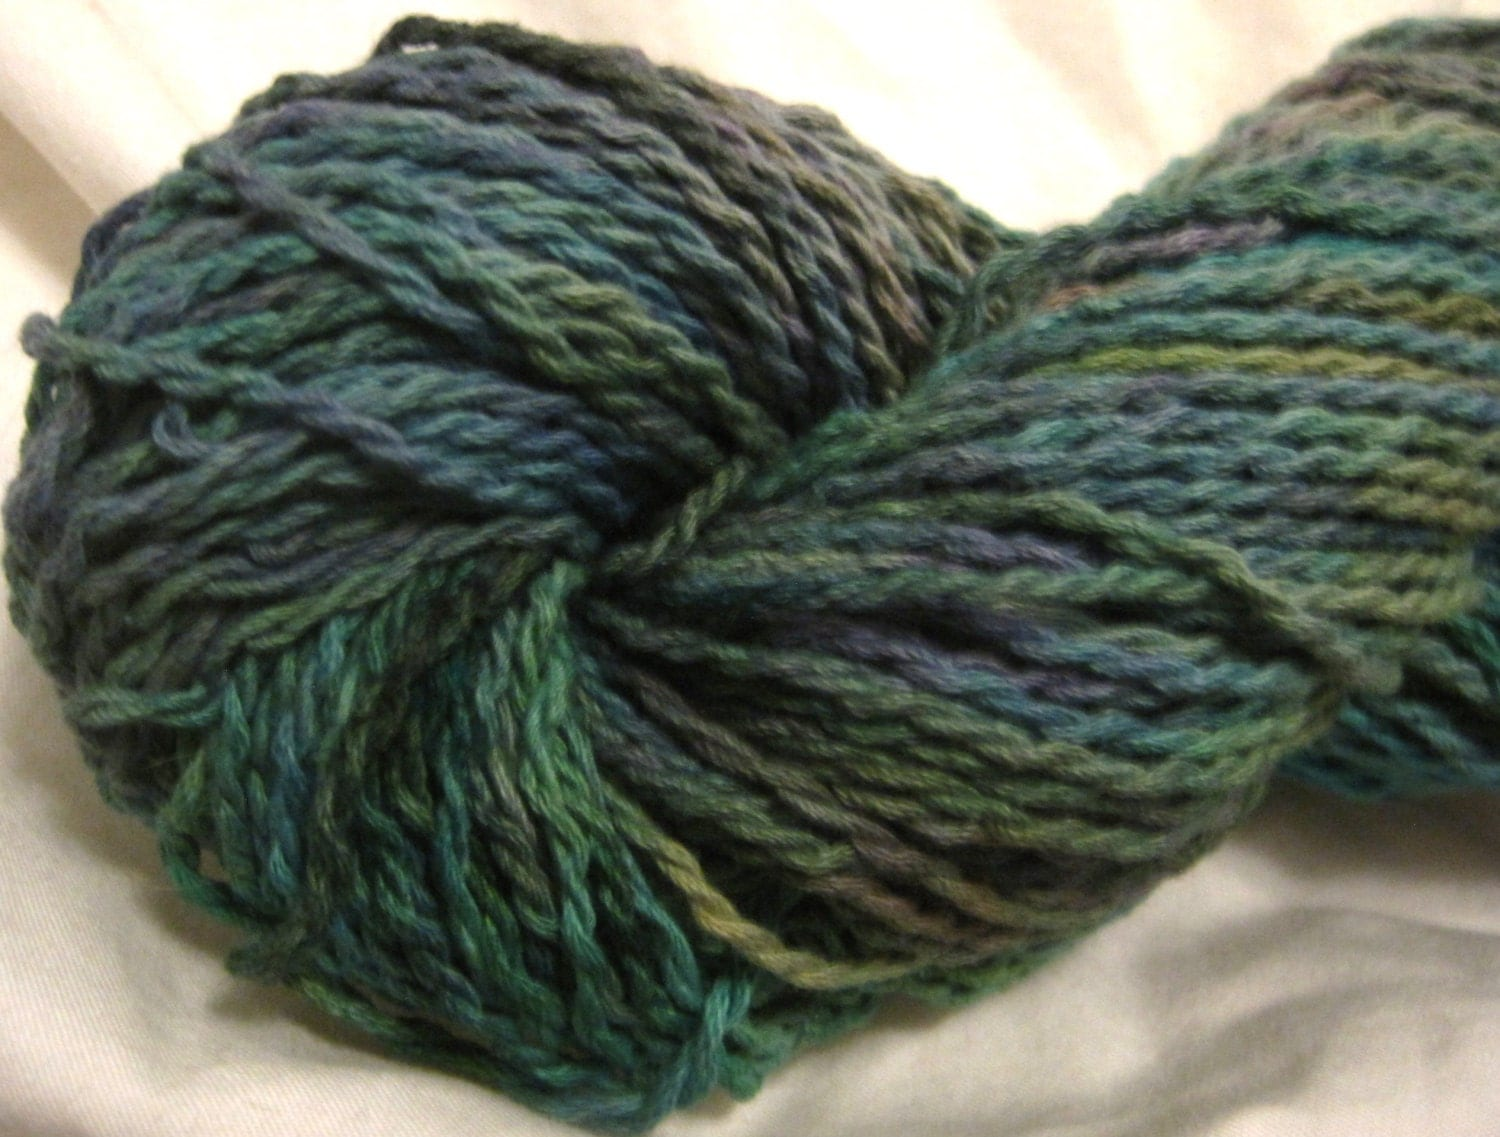 Hand Dyed Worsted Weight Cotton Yarn Vegan Yarn Recycled